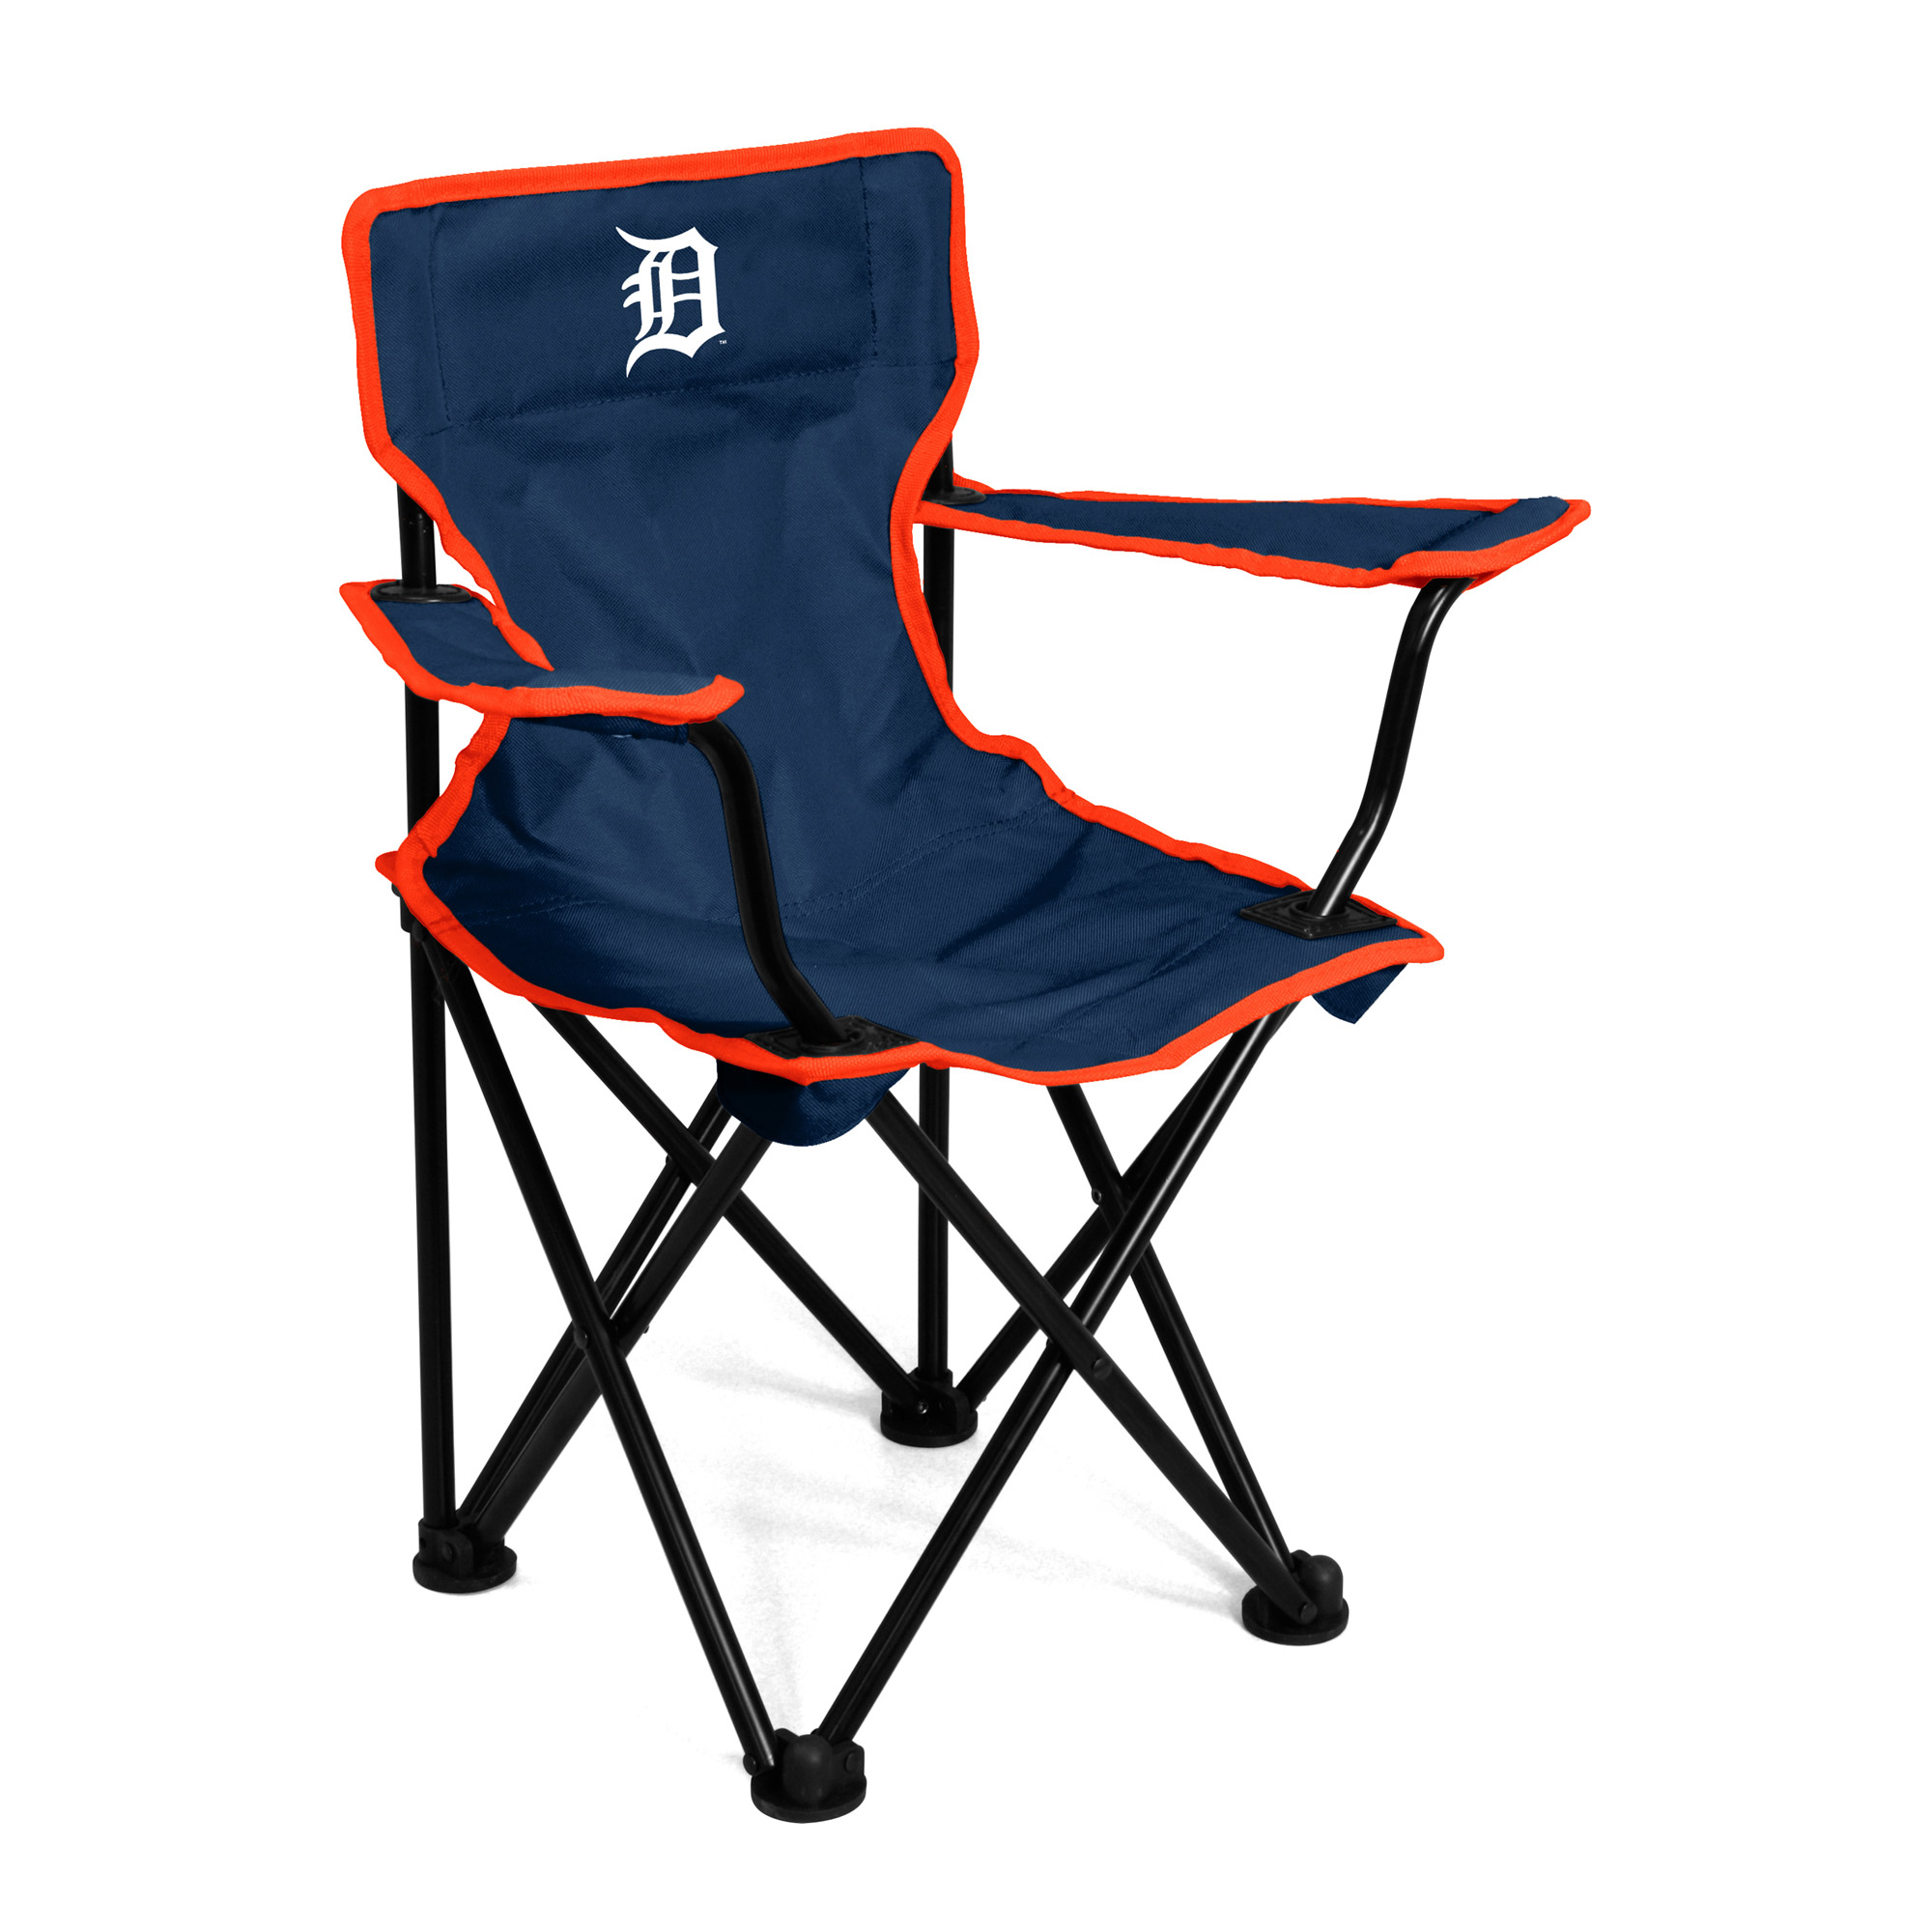 Detroit Tigers Toddler Chair - No Size